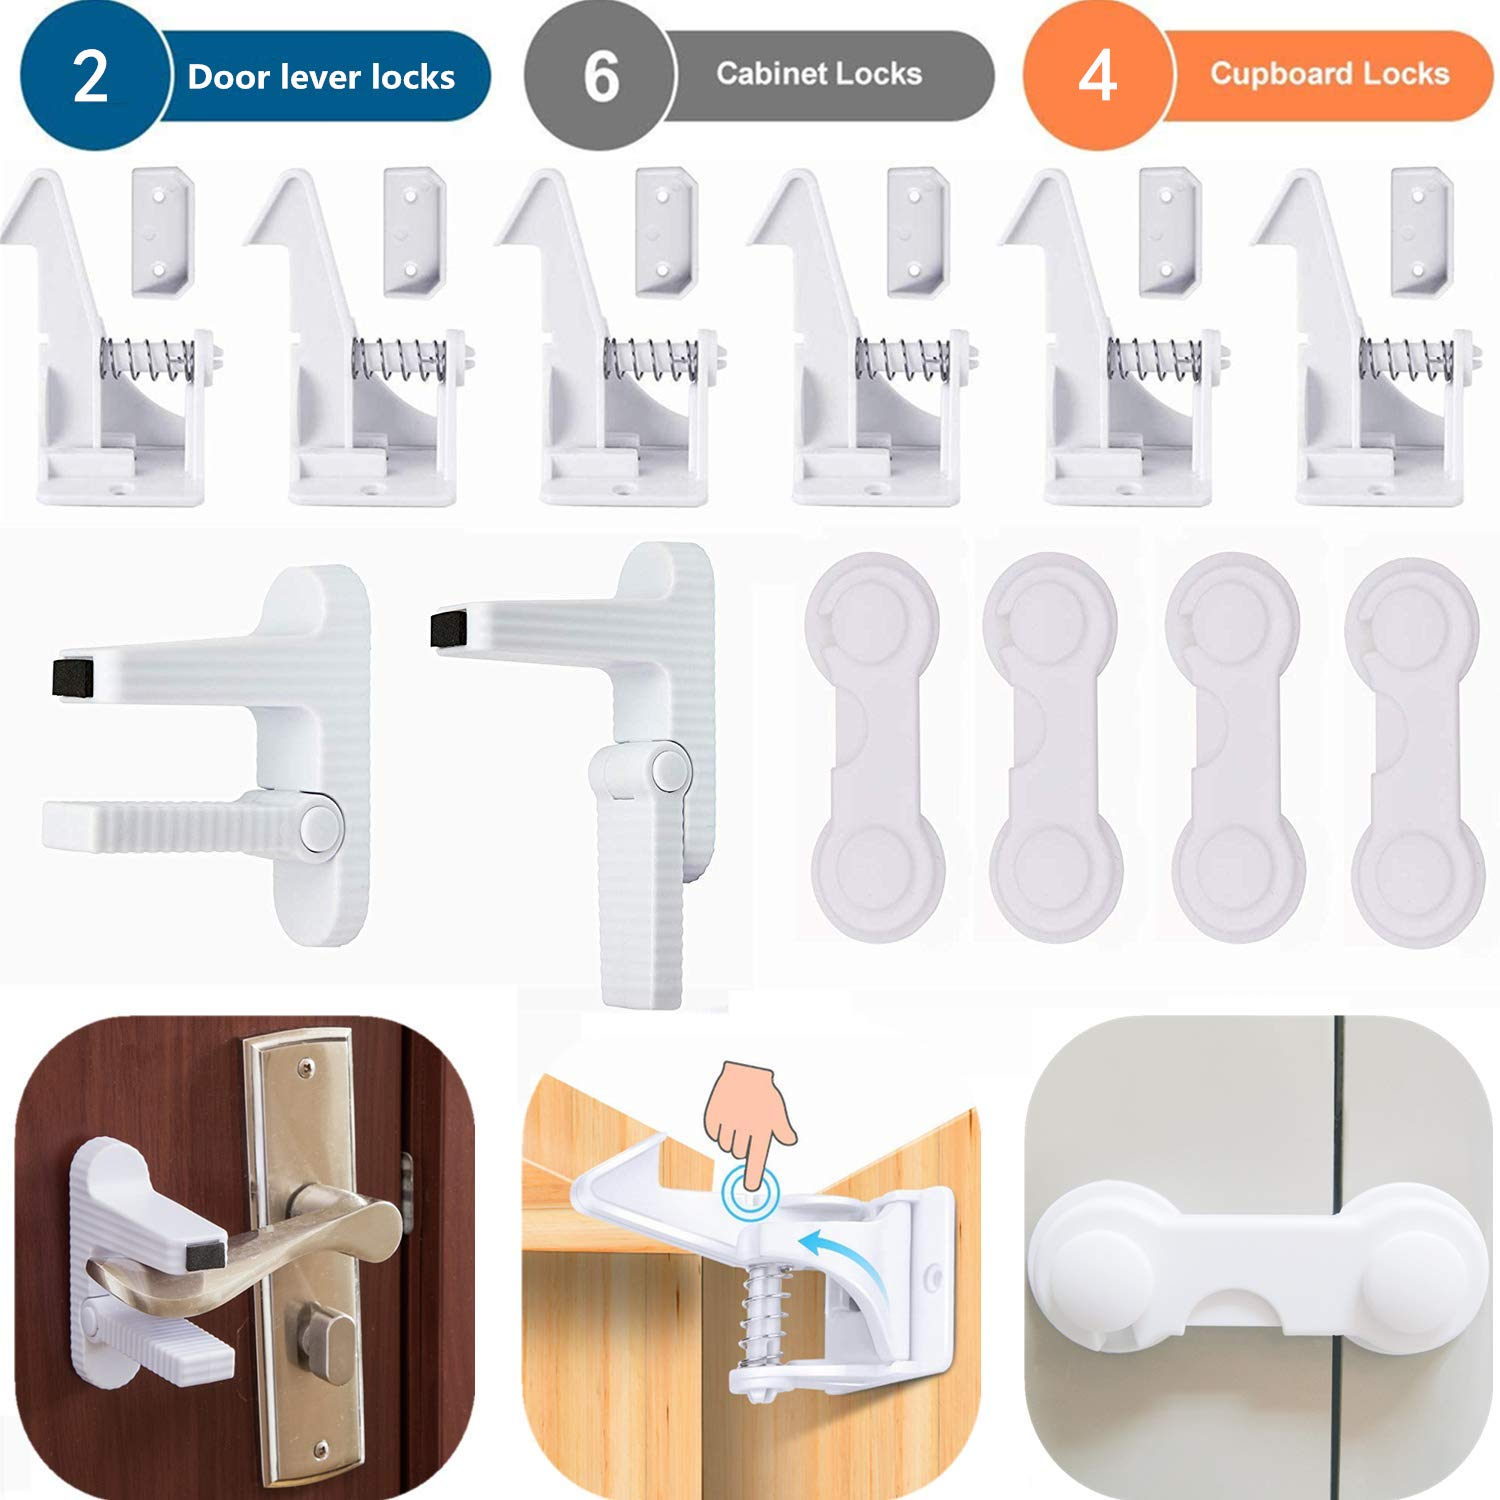 Child Safety Locks,2 Door Lever Handles Locks,4 Baby Safety Cabinet Latches Locks,6 Invisible Spring Cupboard Drawer Locks Child Proofing Equipment for Kitchen Home Bedroom Closets(12 Pack,White)